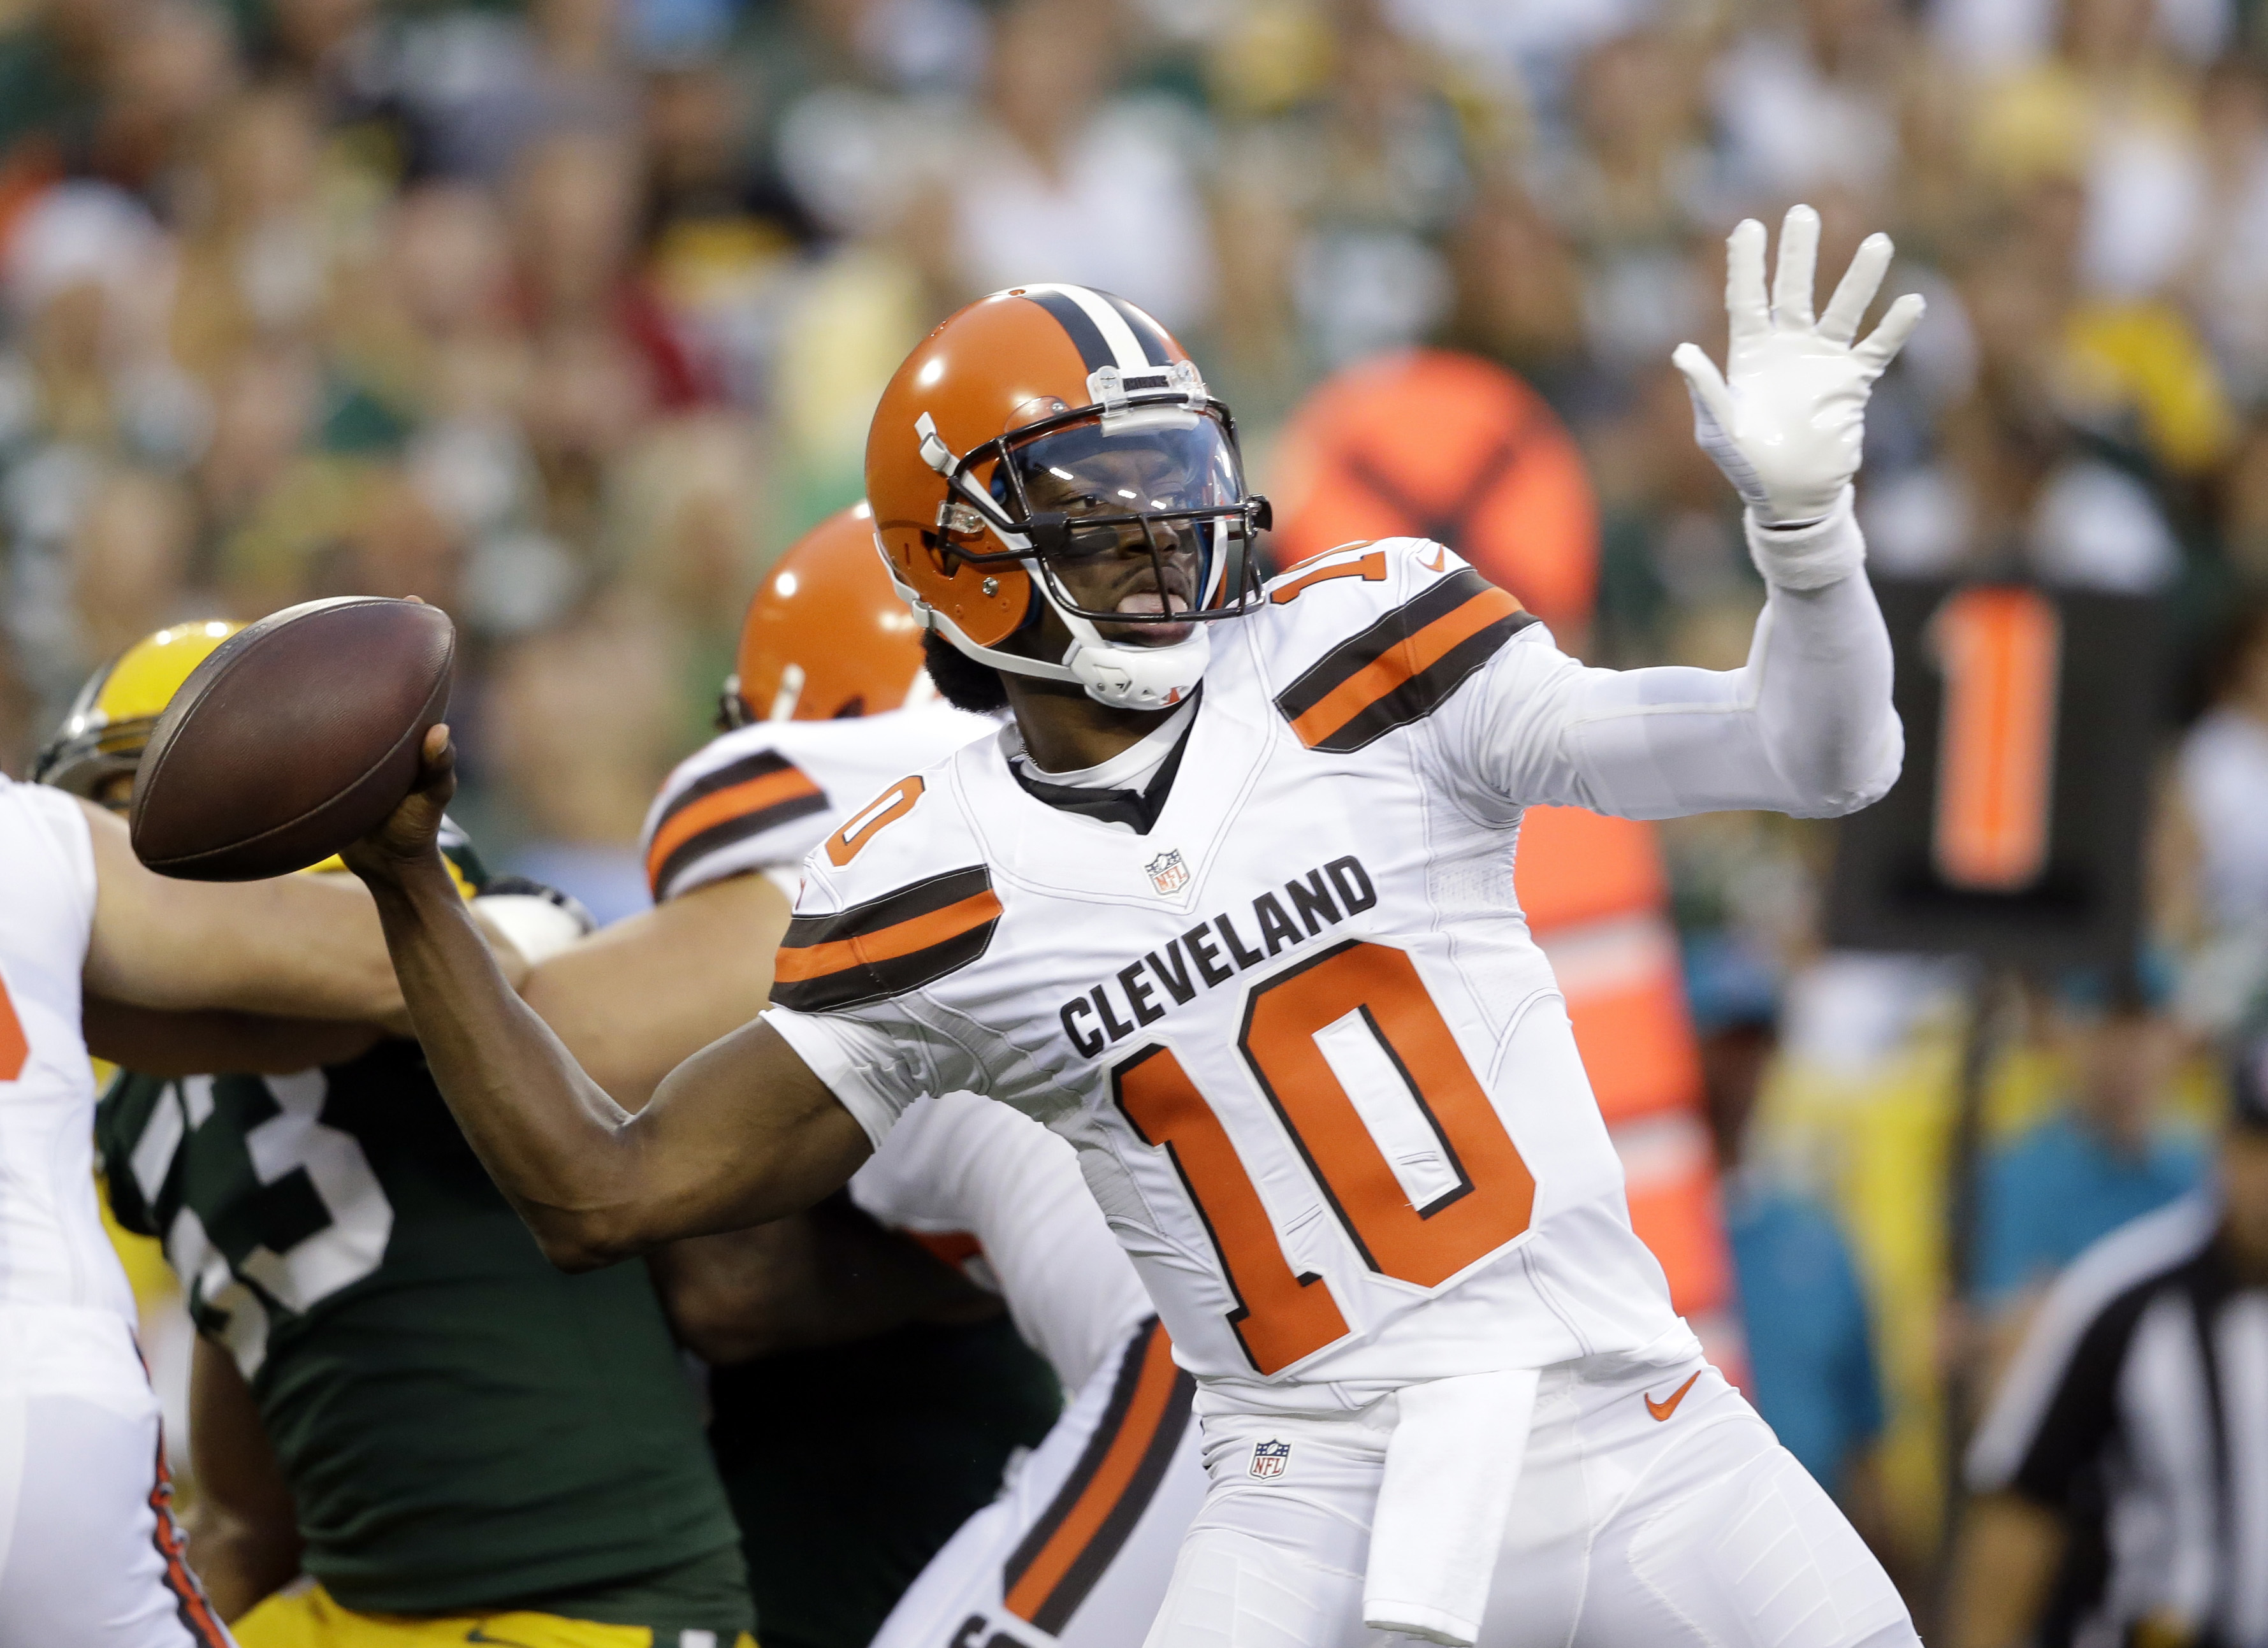 Robert Griffin III completes a long pass, throws interception in ...